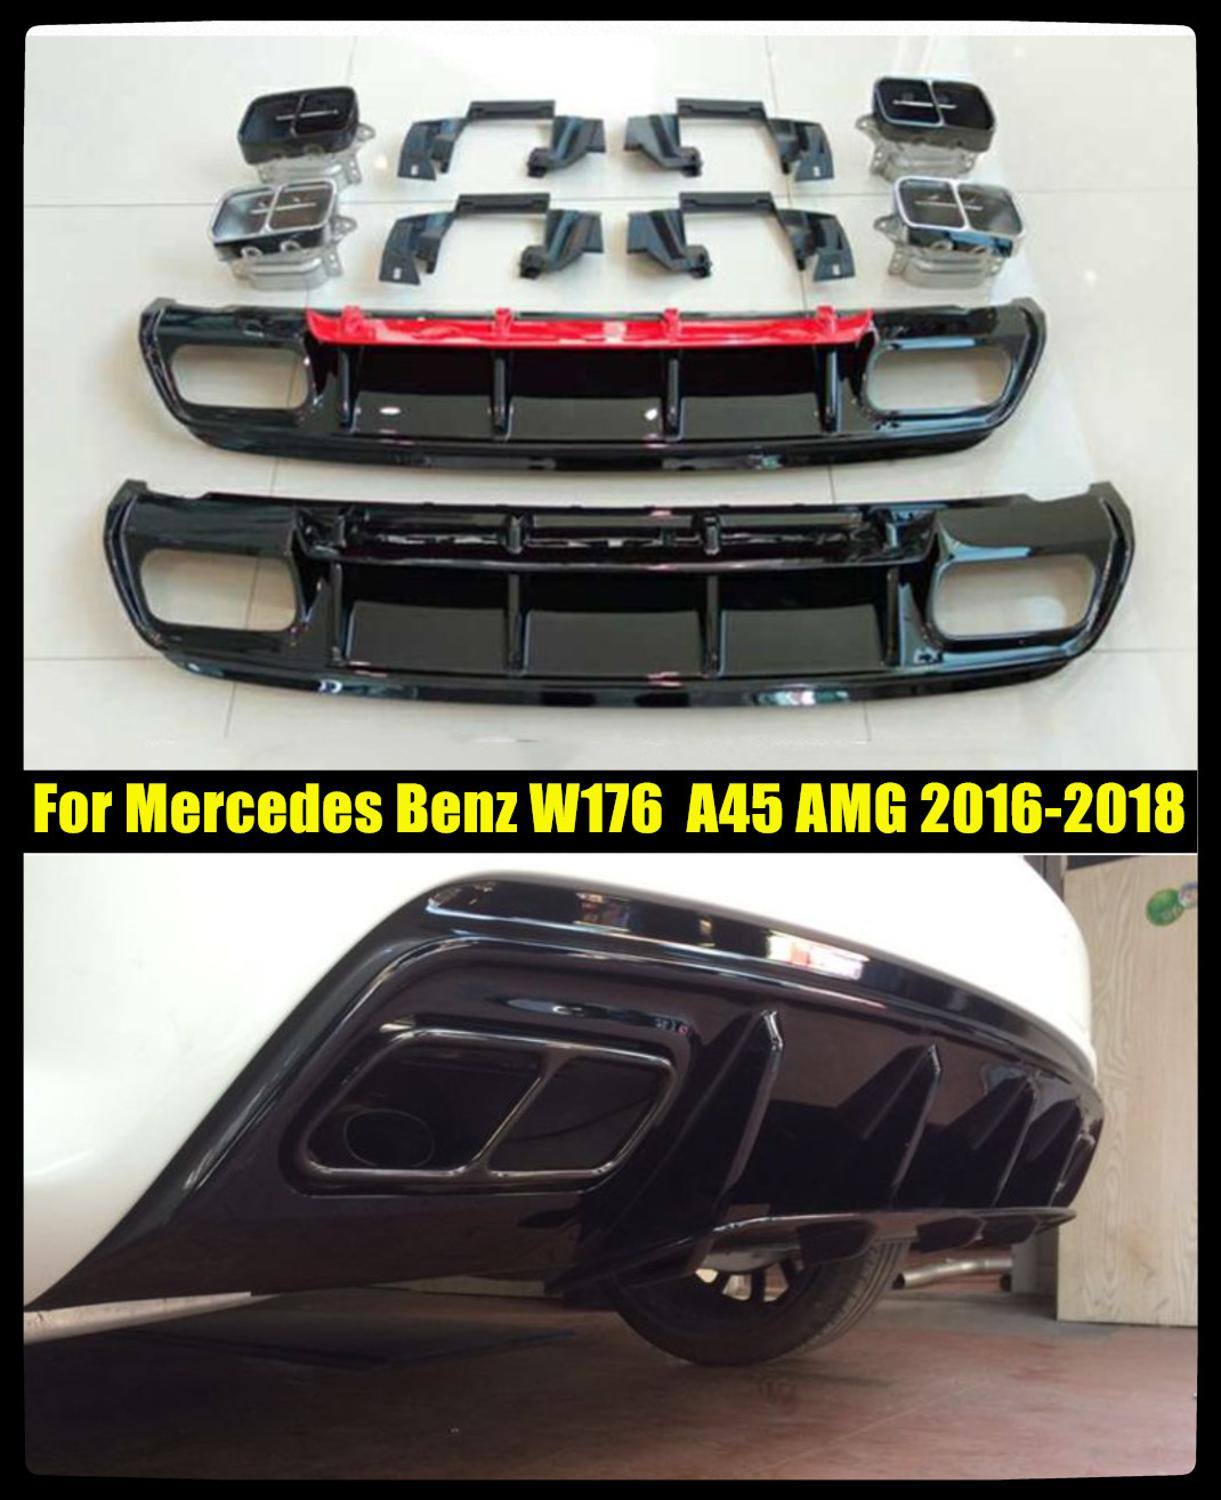 For <font><b>Mercedes</b></font> <font><b>Benz</b></font> <font><b>W176</b></font> Hatchback 4 Door 16-18 A45 AMG A180 <font><b>A200</b></font> Rear Diffuser Lip Spoiler image